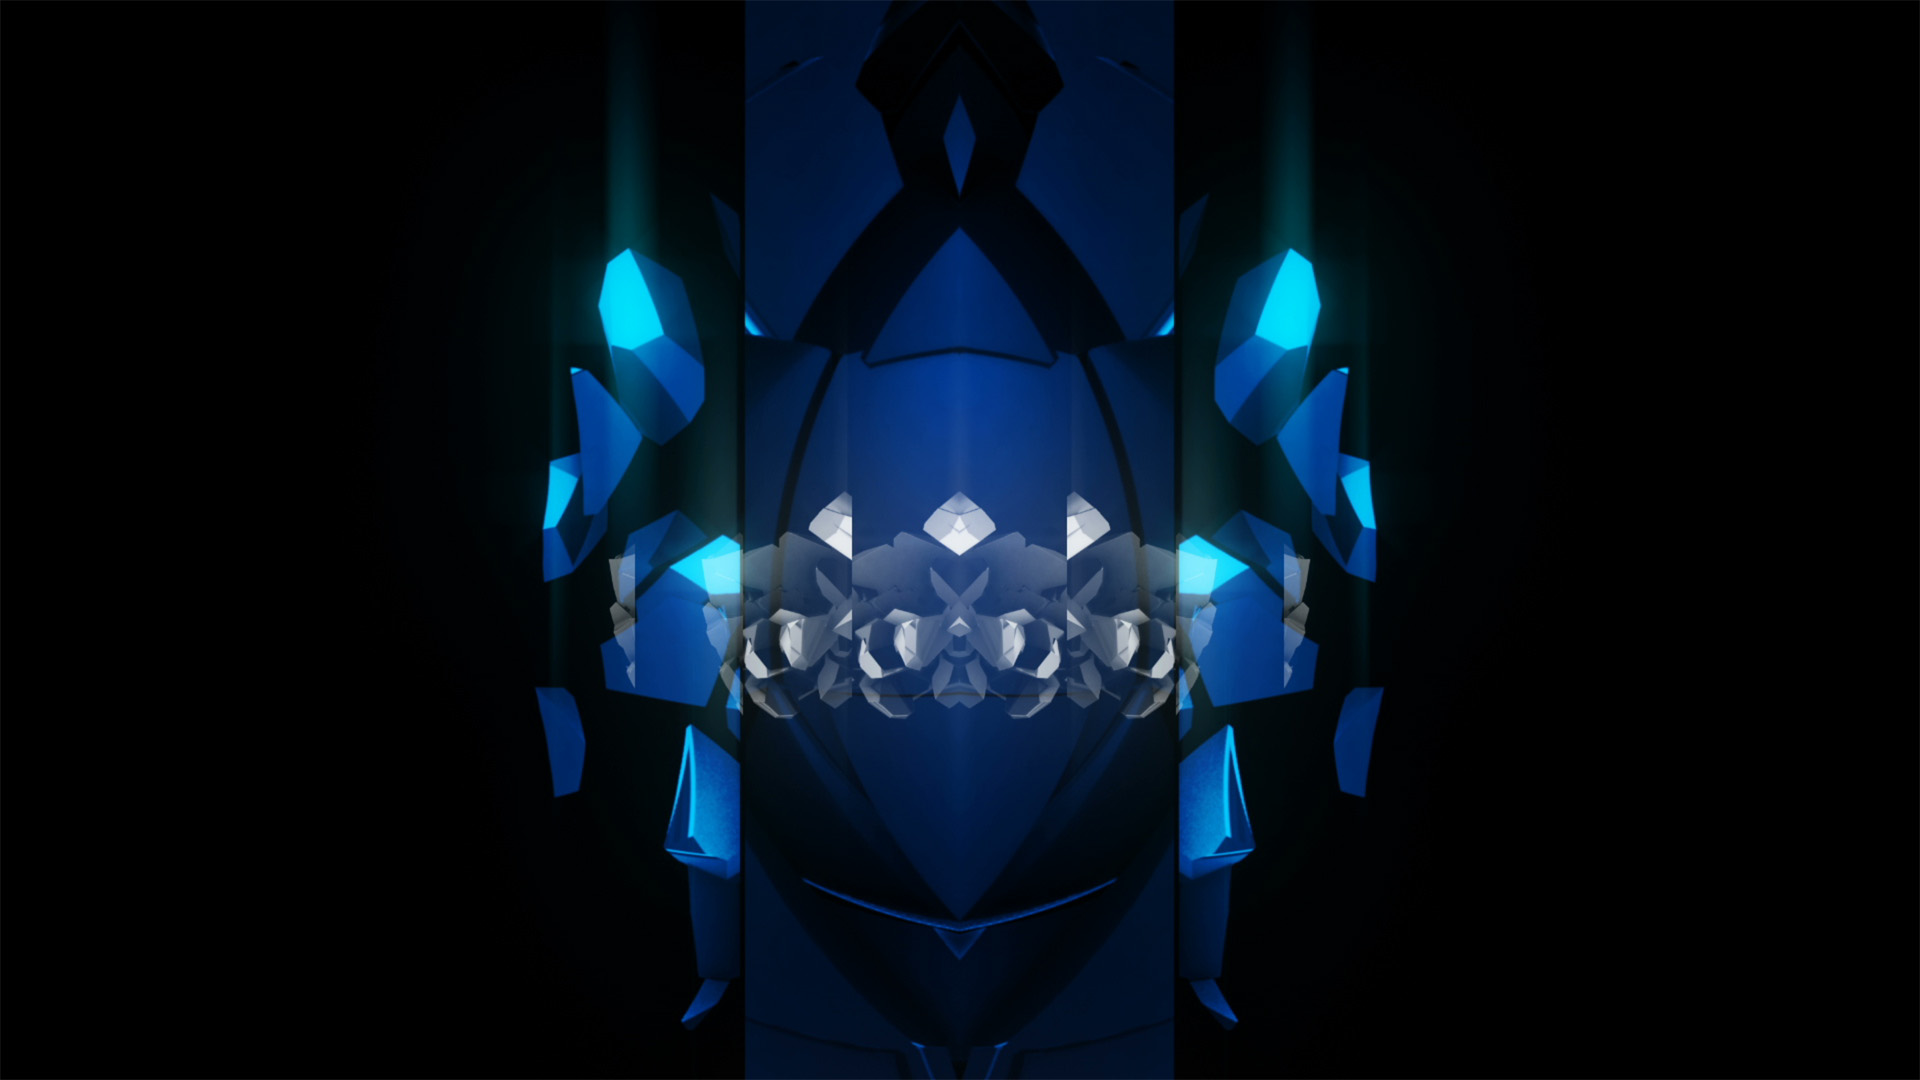 abstract luxury vj loops elegant video motion background